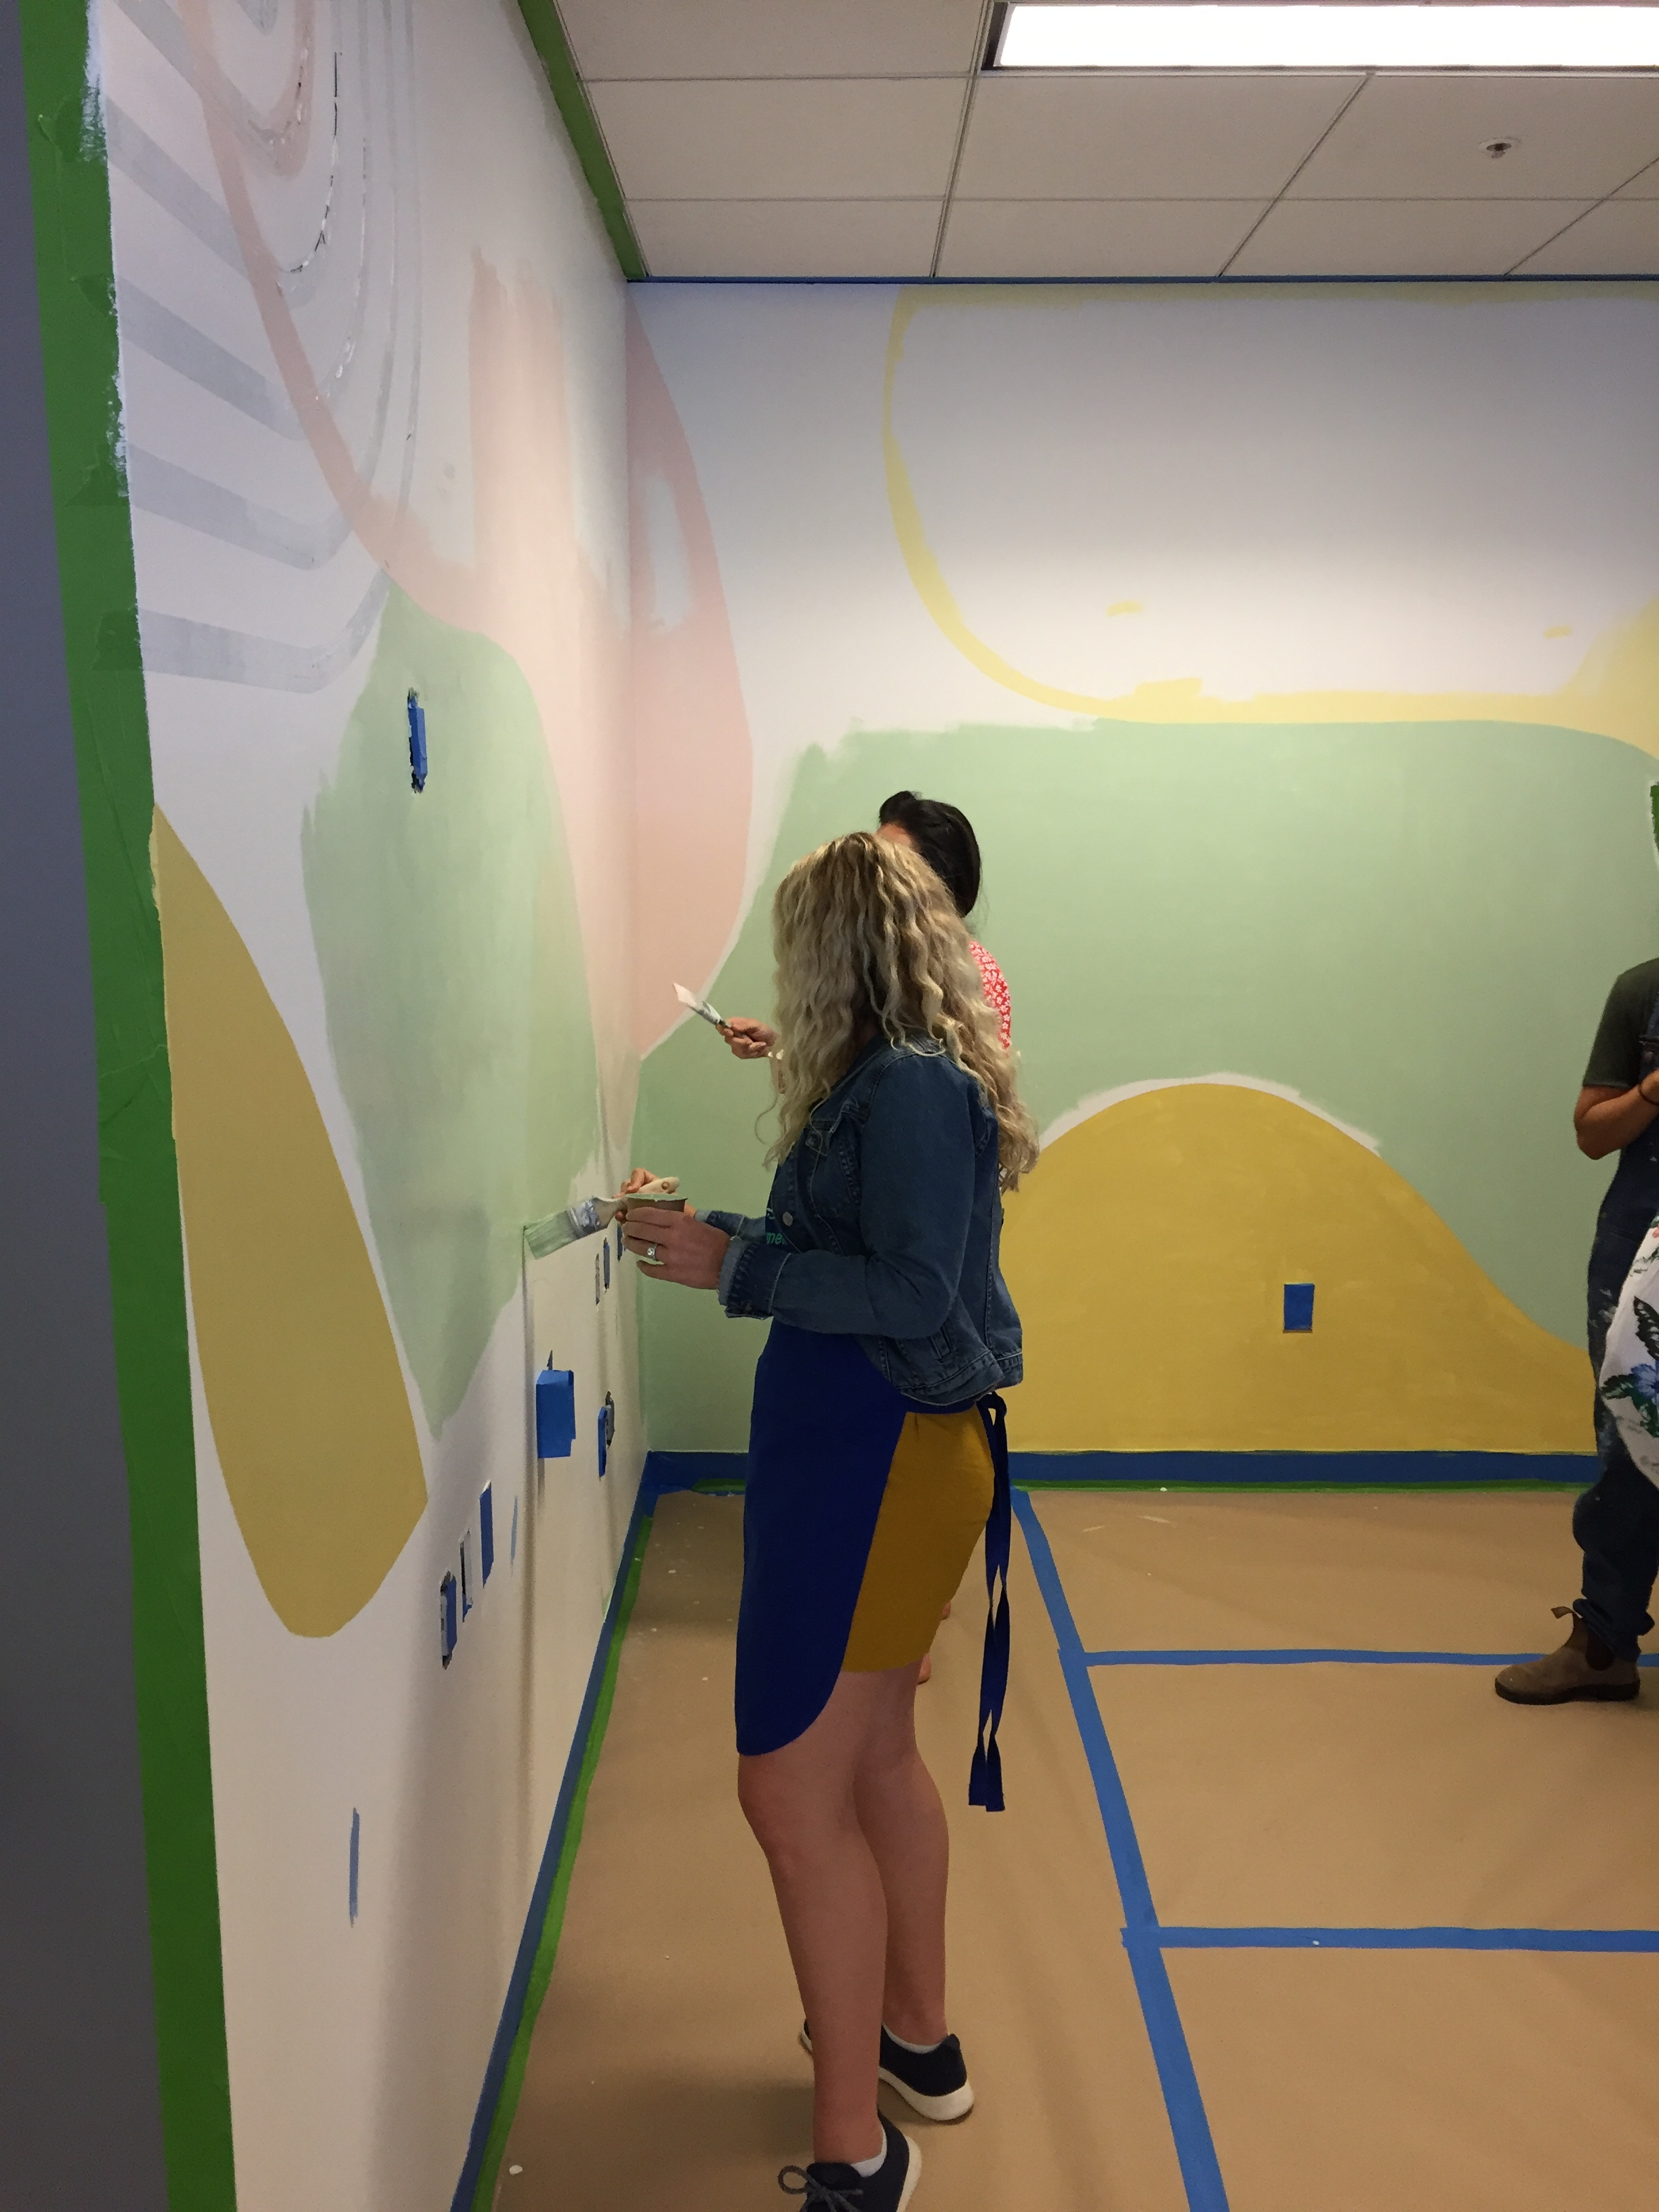 Event-mural-live-painting-san-francisco-segment-wall-and-wall-mural-company_004.jpeg